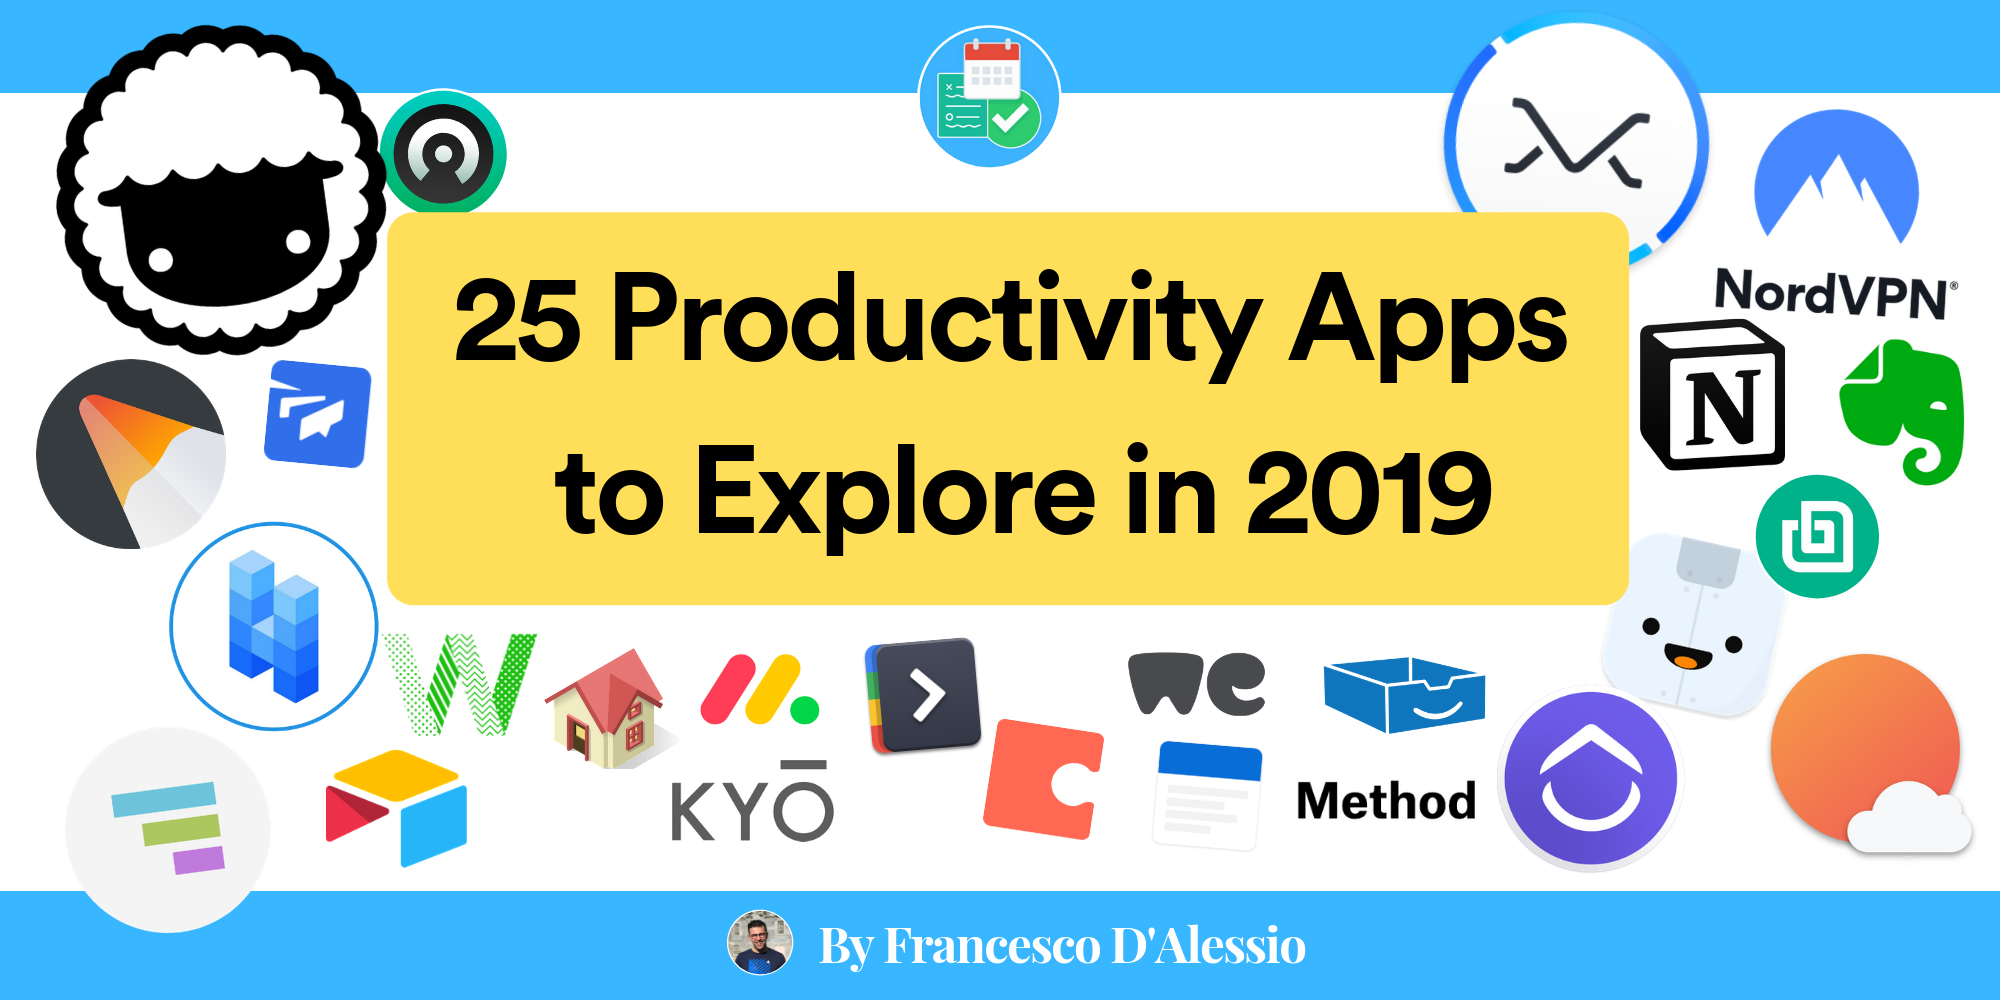 25 Productivity Apps to Explore in 2019 - Francesco D